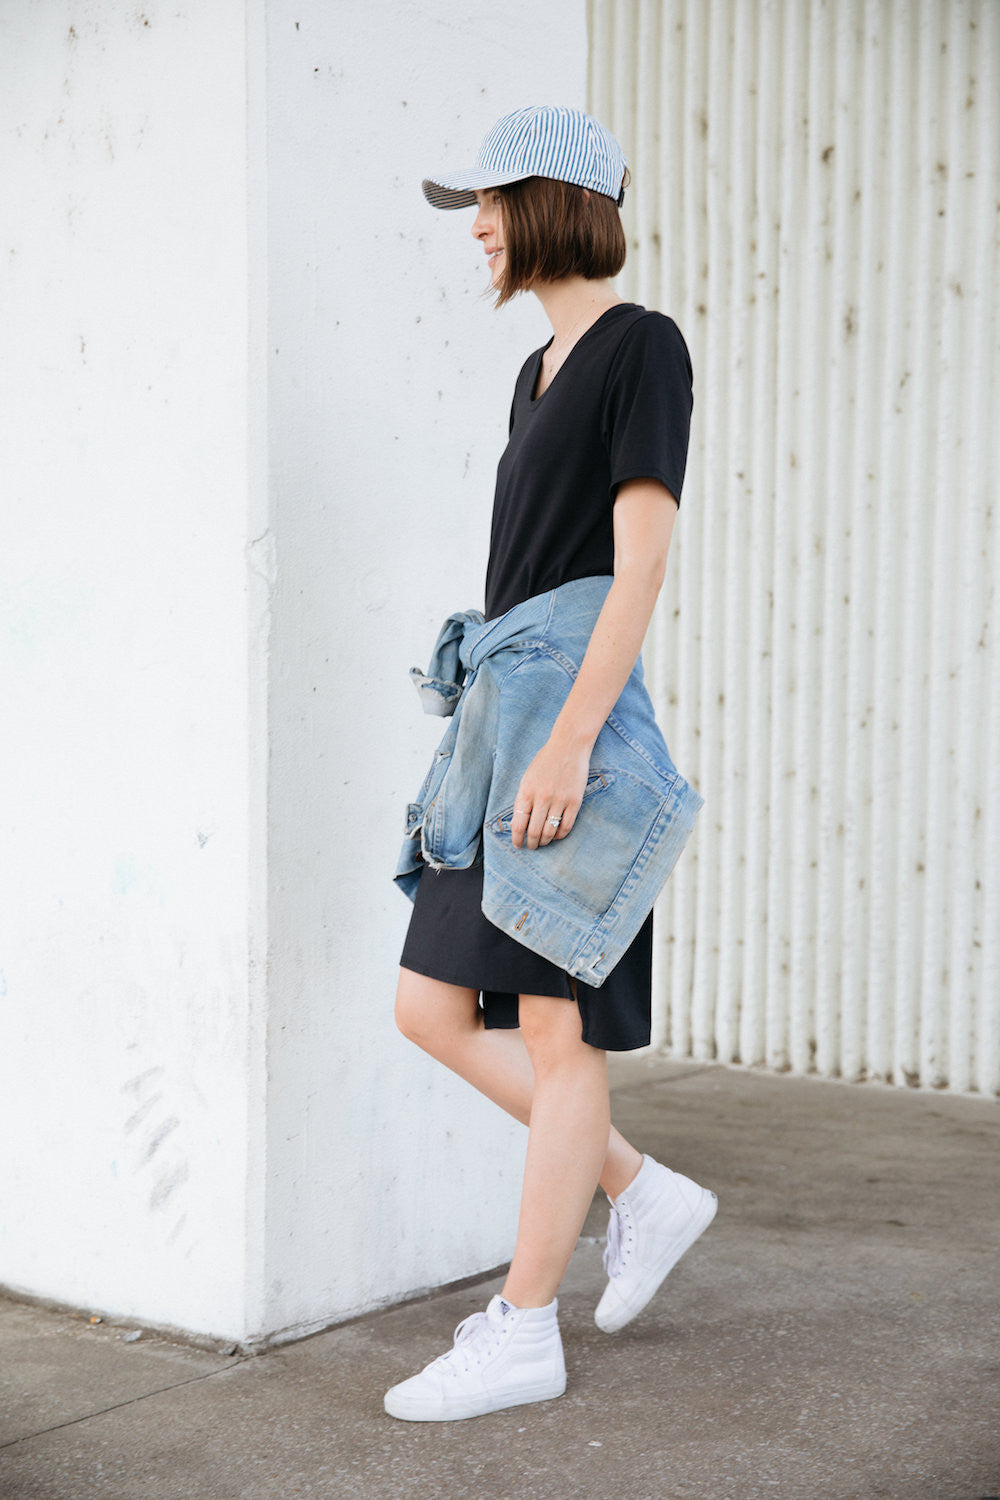 713999a647 Maegan went sporty with the t-shirt dress